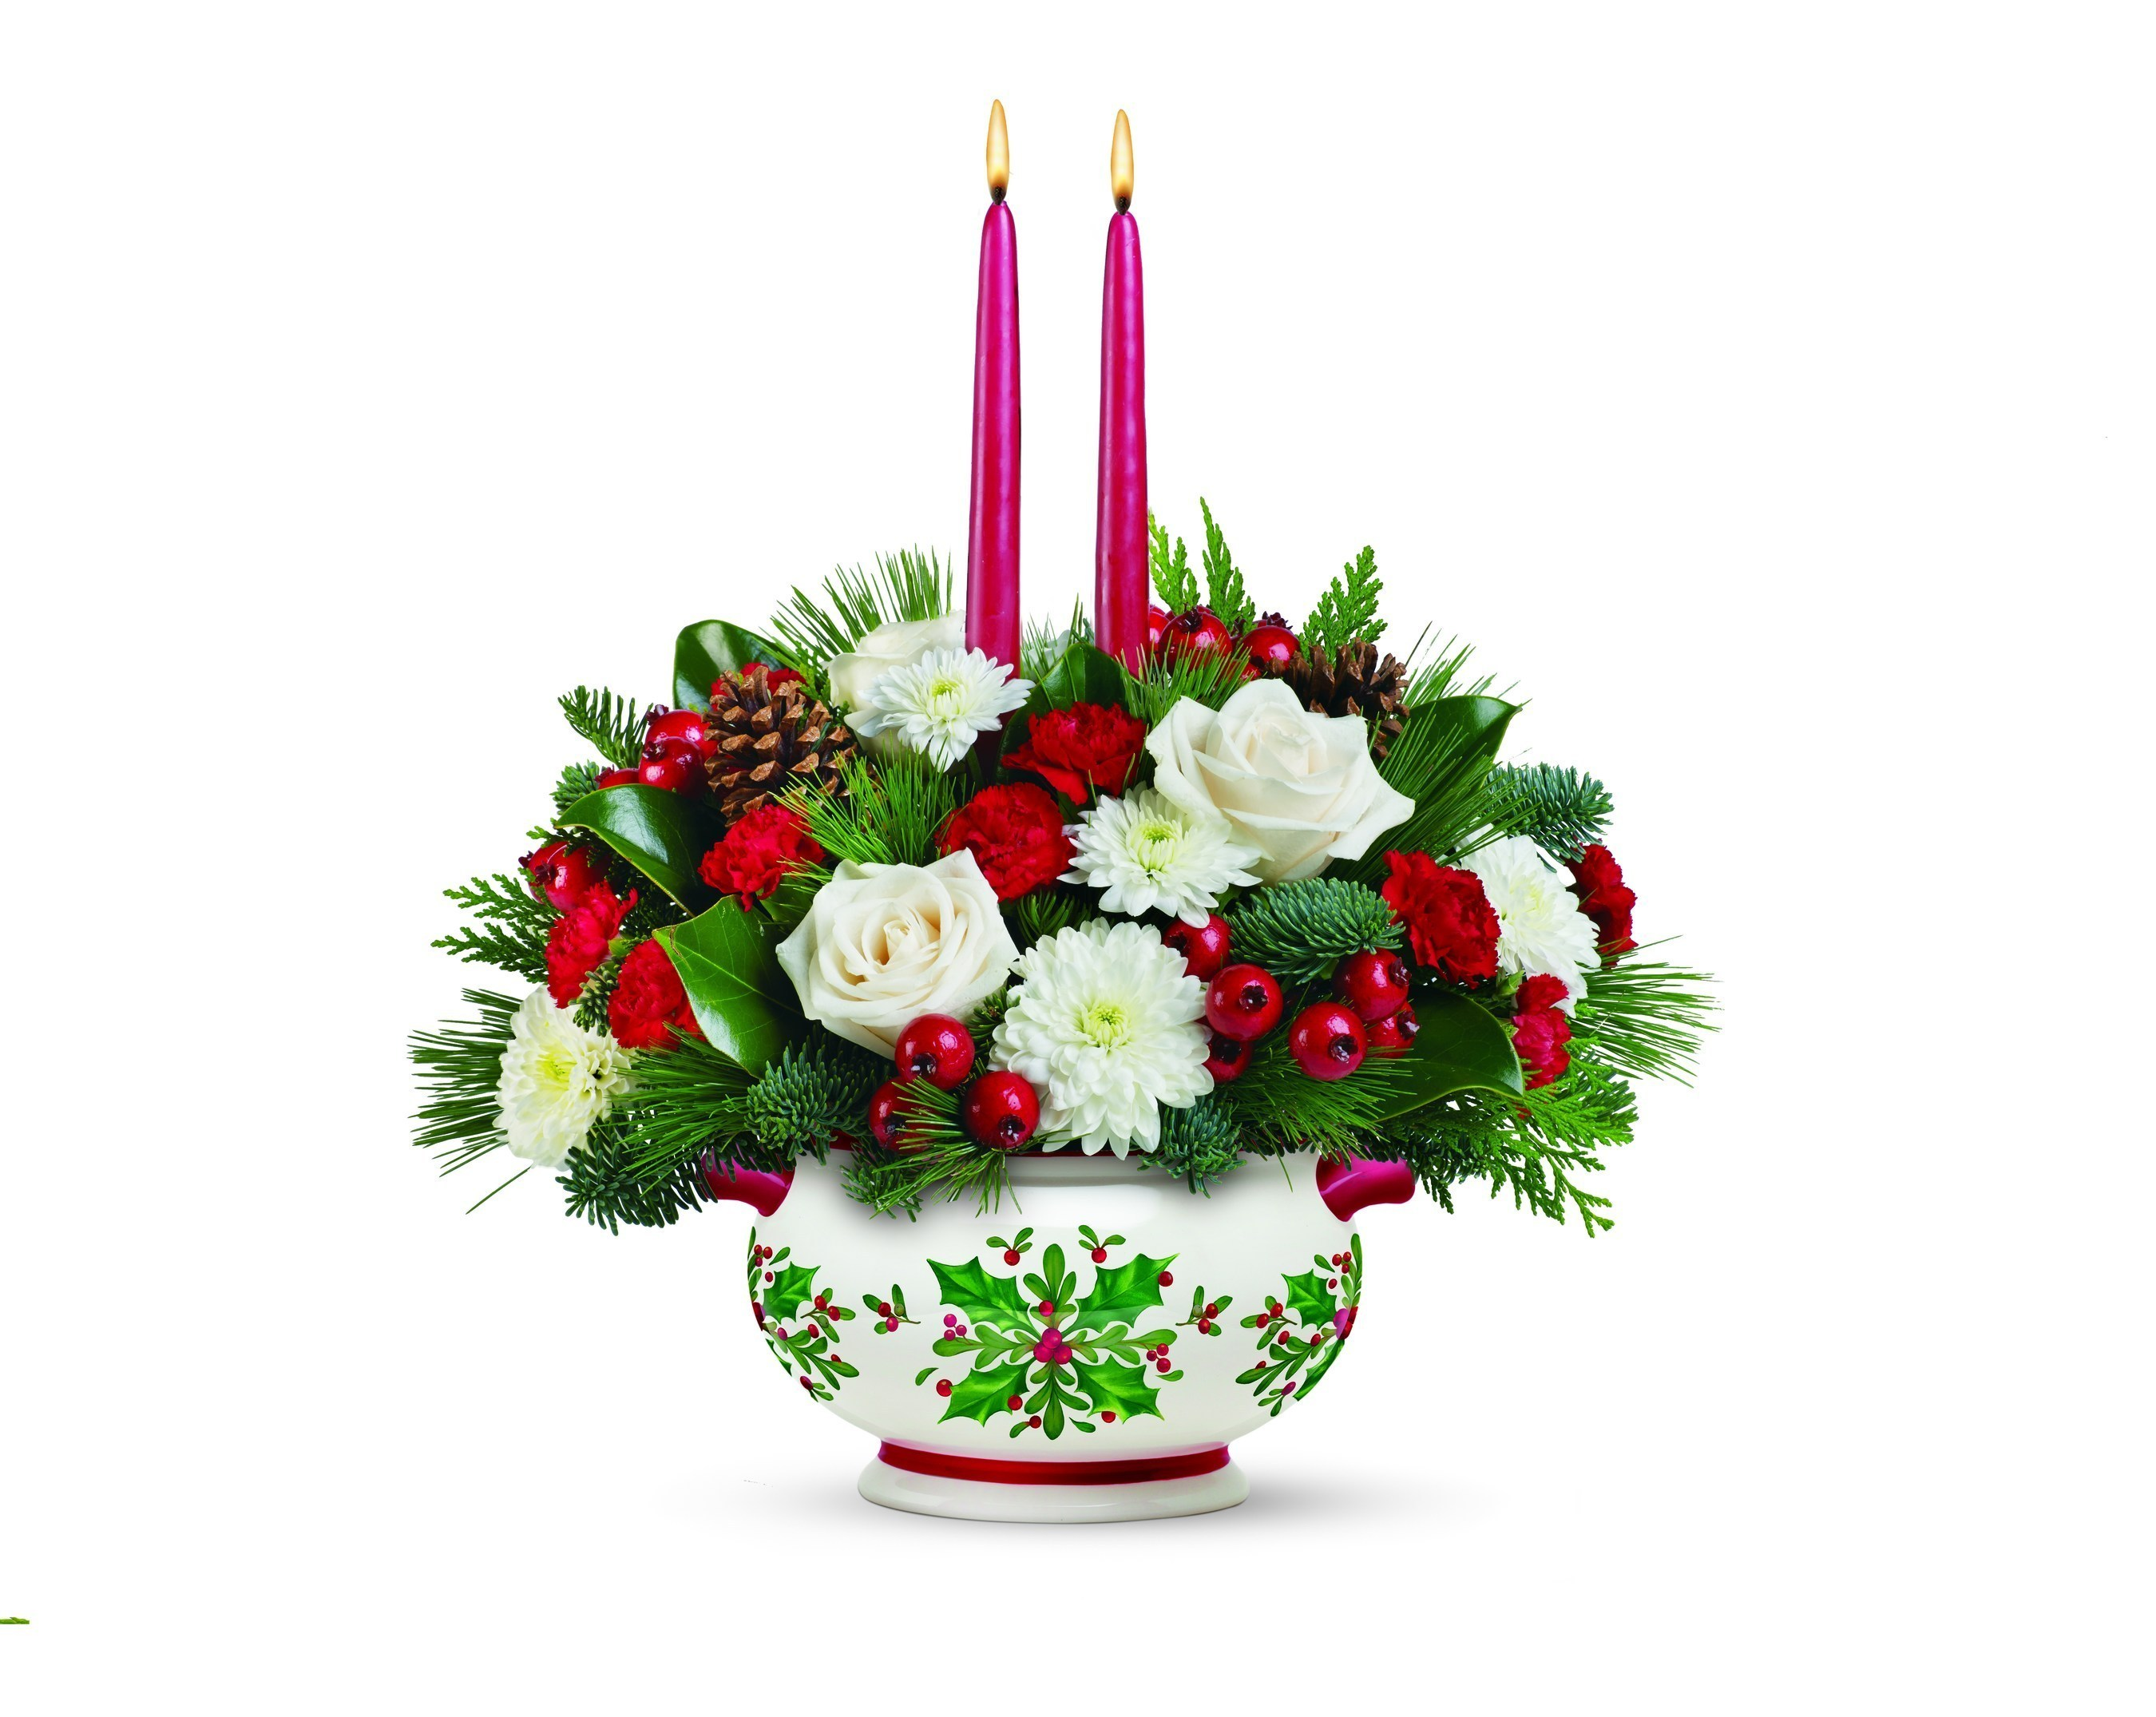 Teleflora Brings You 'Homemade For The Holidays' This ...